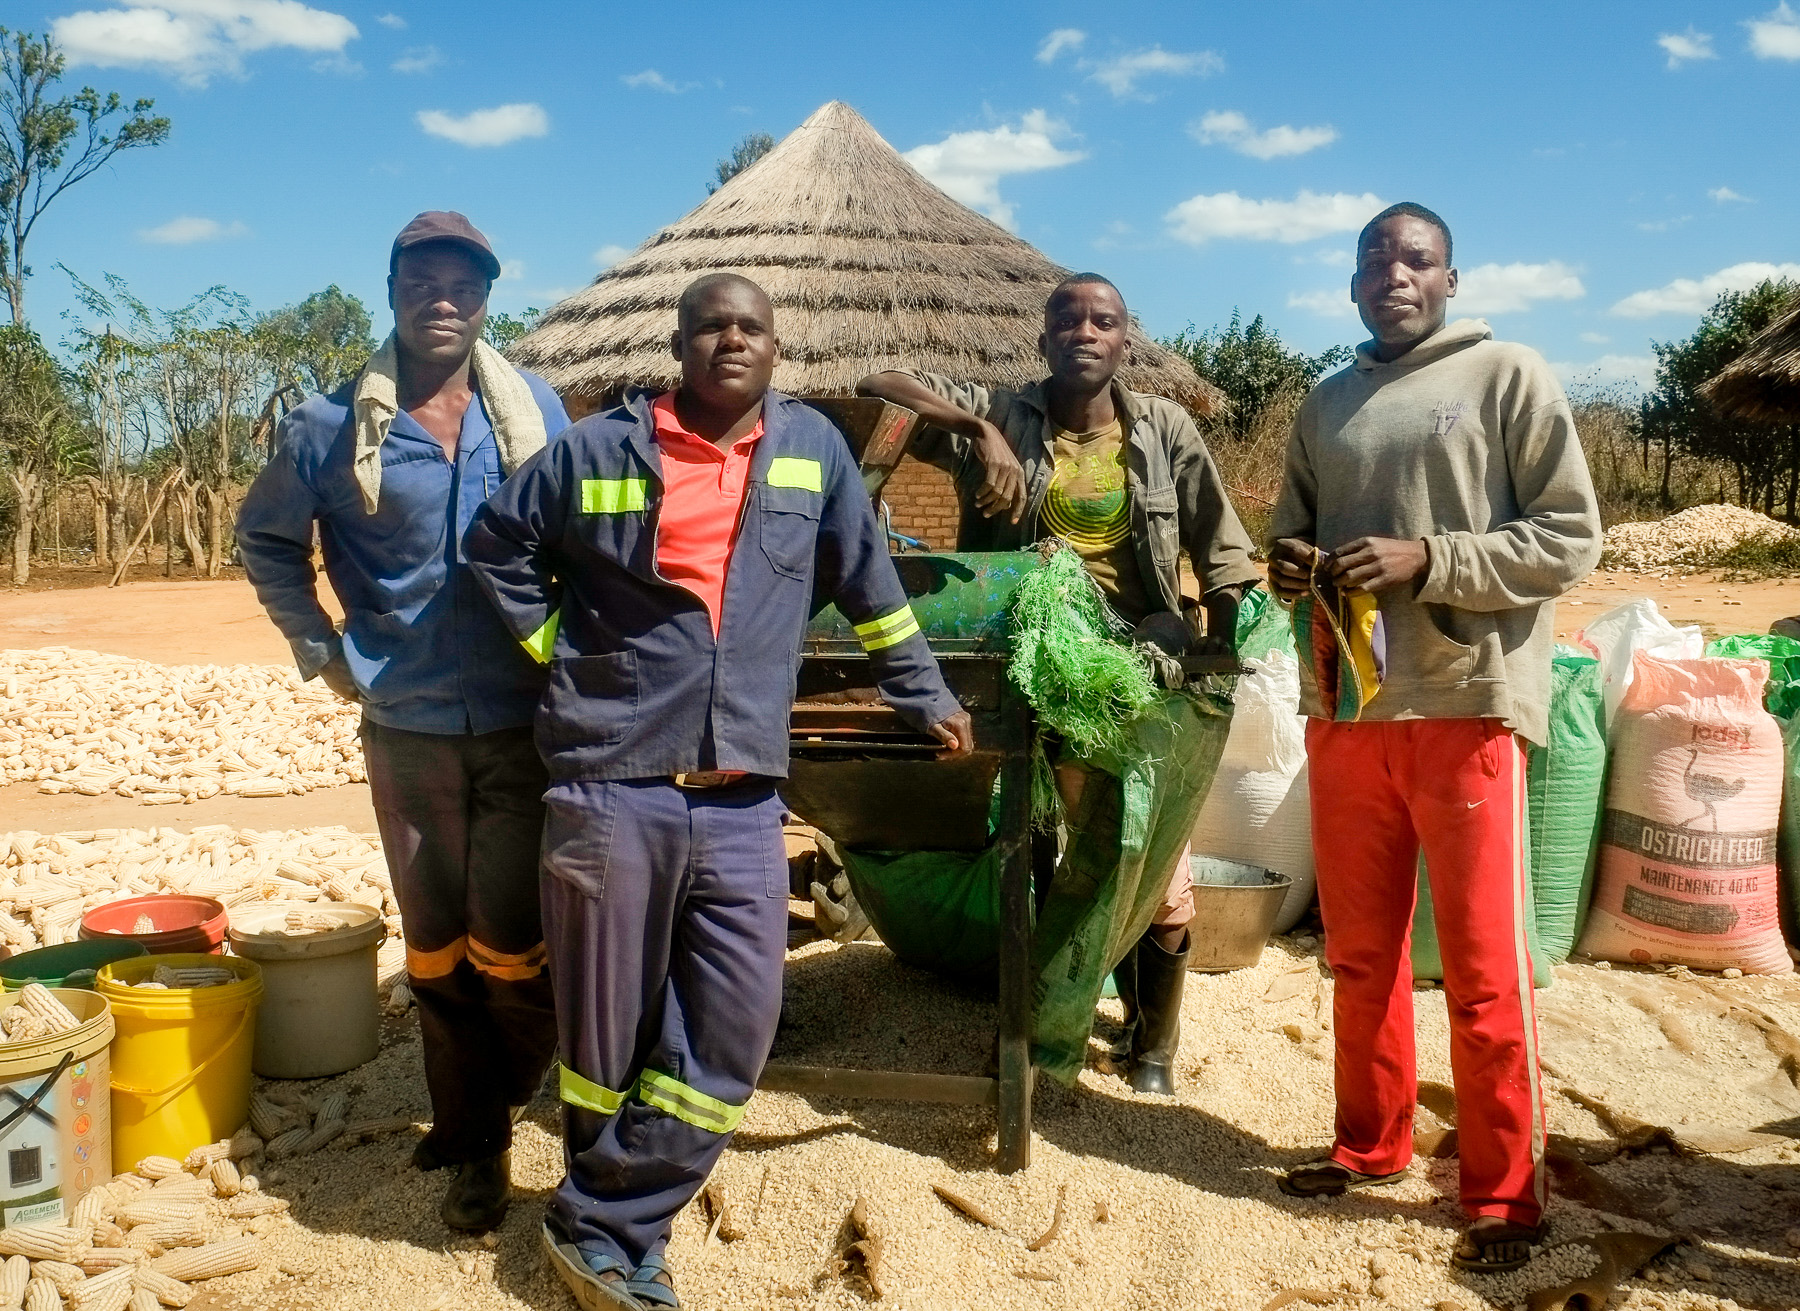 After receiving training from CIMMYT, this group of young men started a small business offering mechanized agricultural services to smallholder farmers near their town in rural Zimbabwe. (Photo: Matthew O'Leary/CIMMYT)